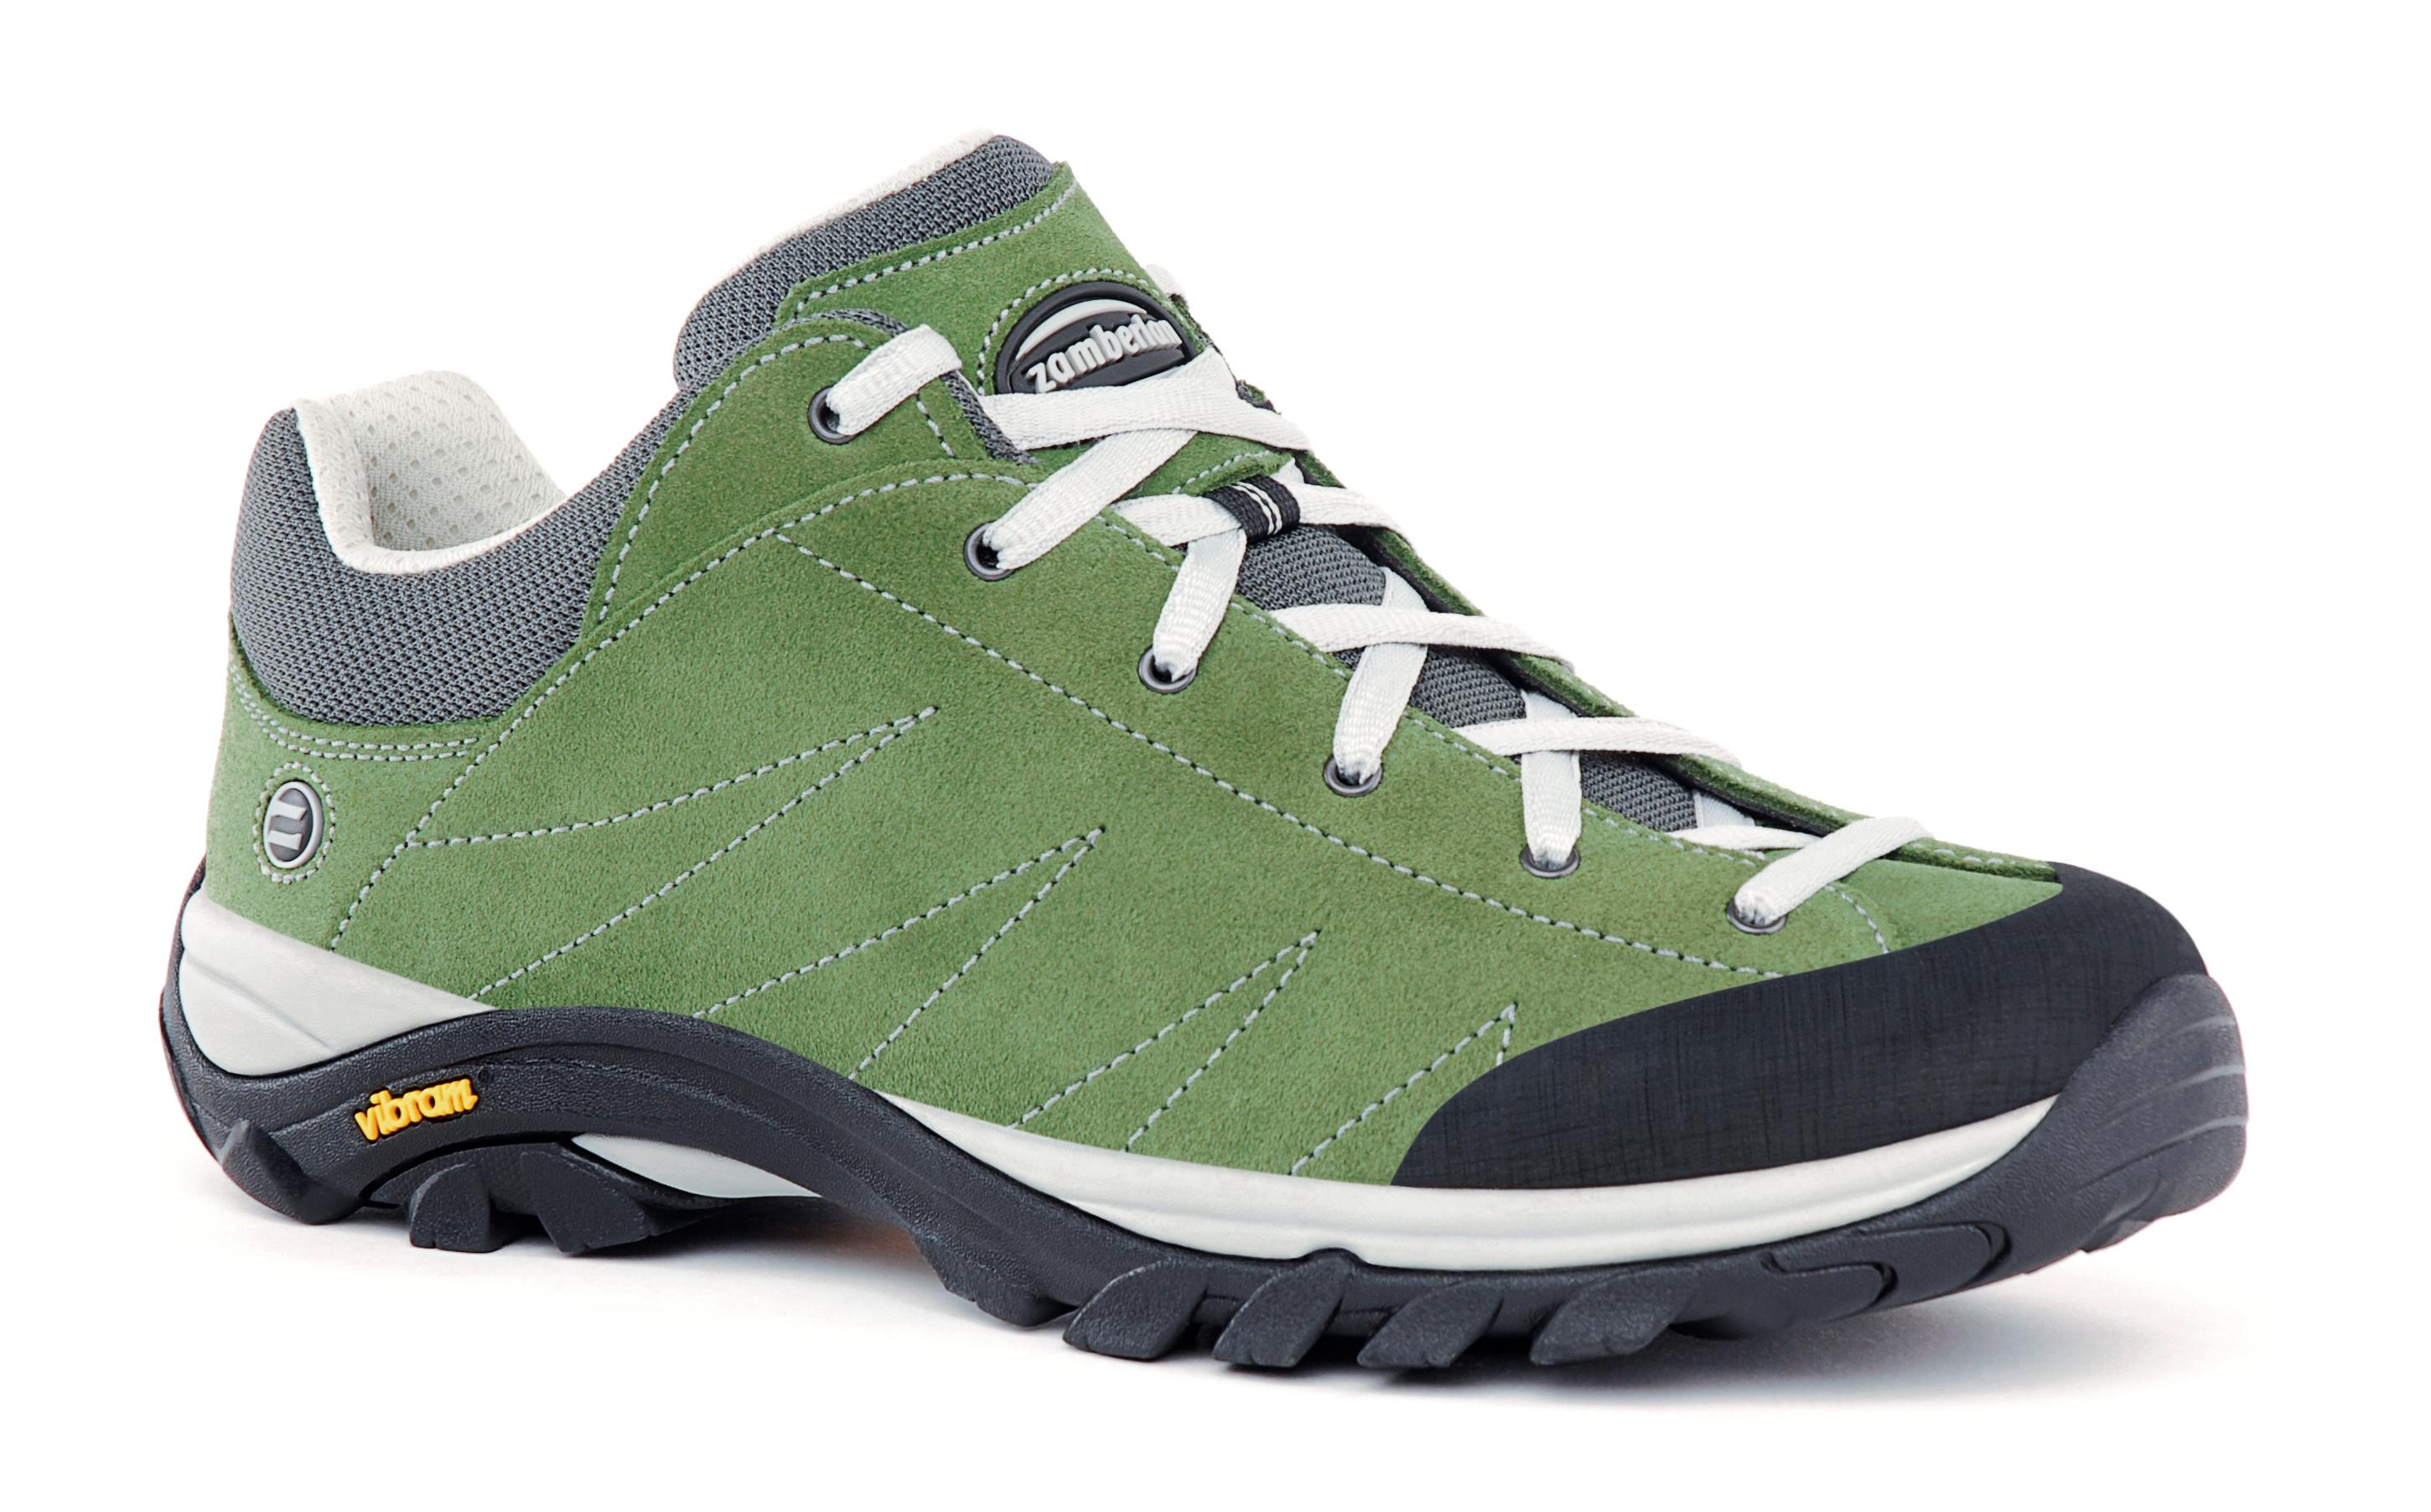 103 HIKE LITE RR   -   Hiking  Shoes   -   Olive Green